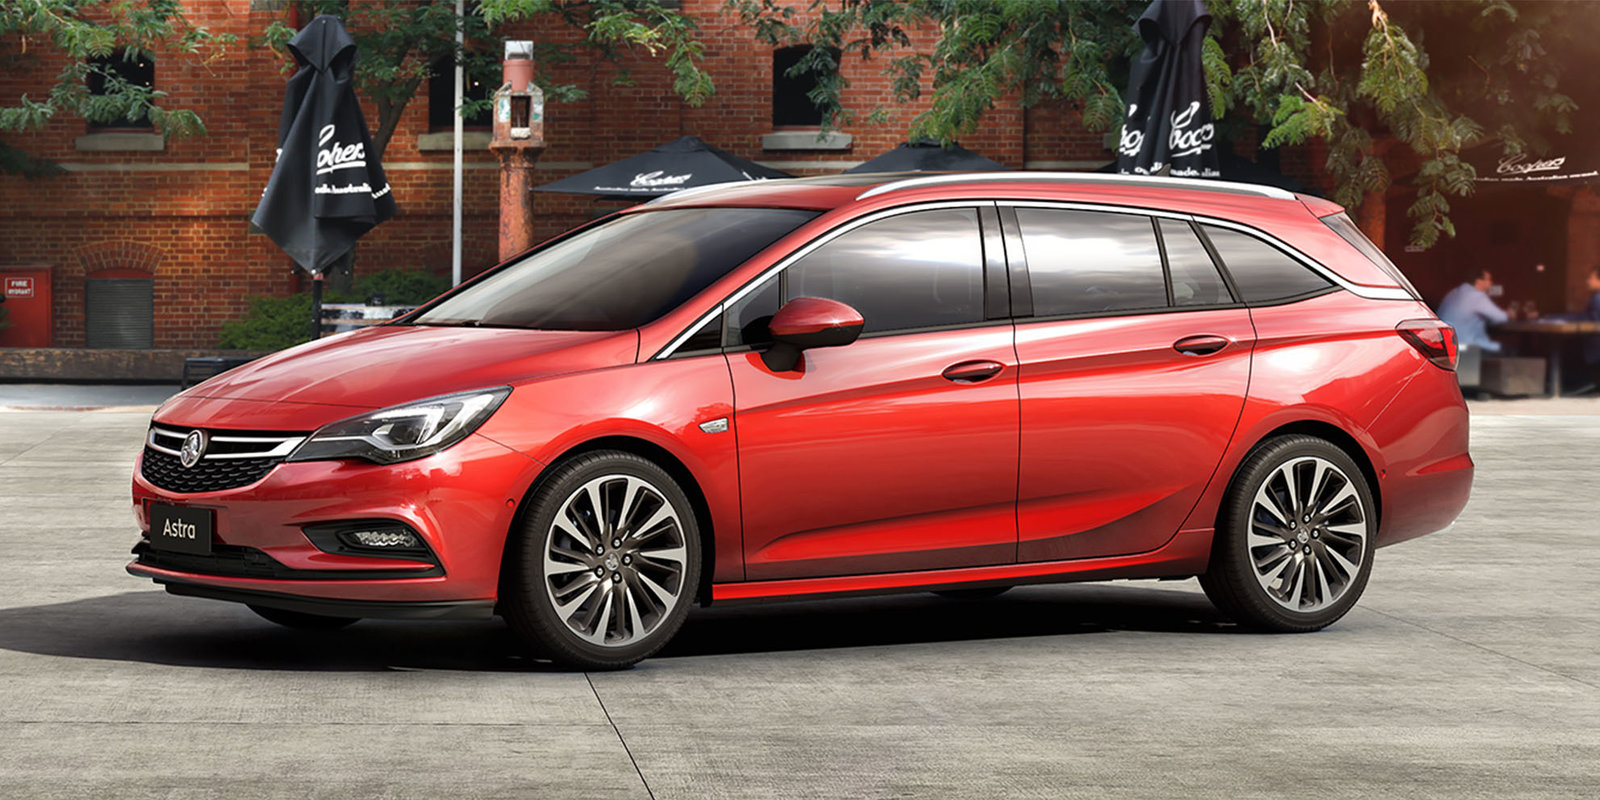 2018 Holden Astra Sportwagon, Release Date, Price, Review ...